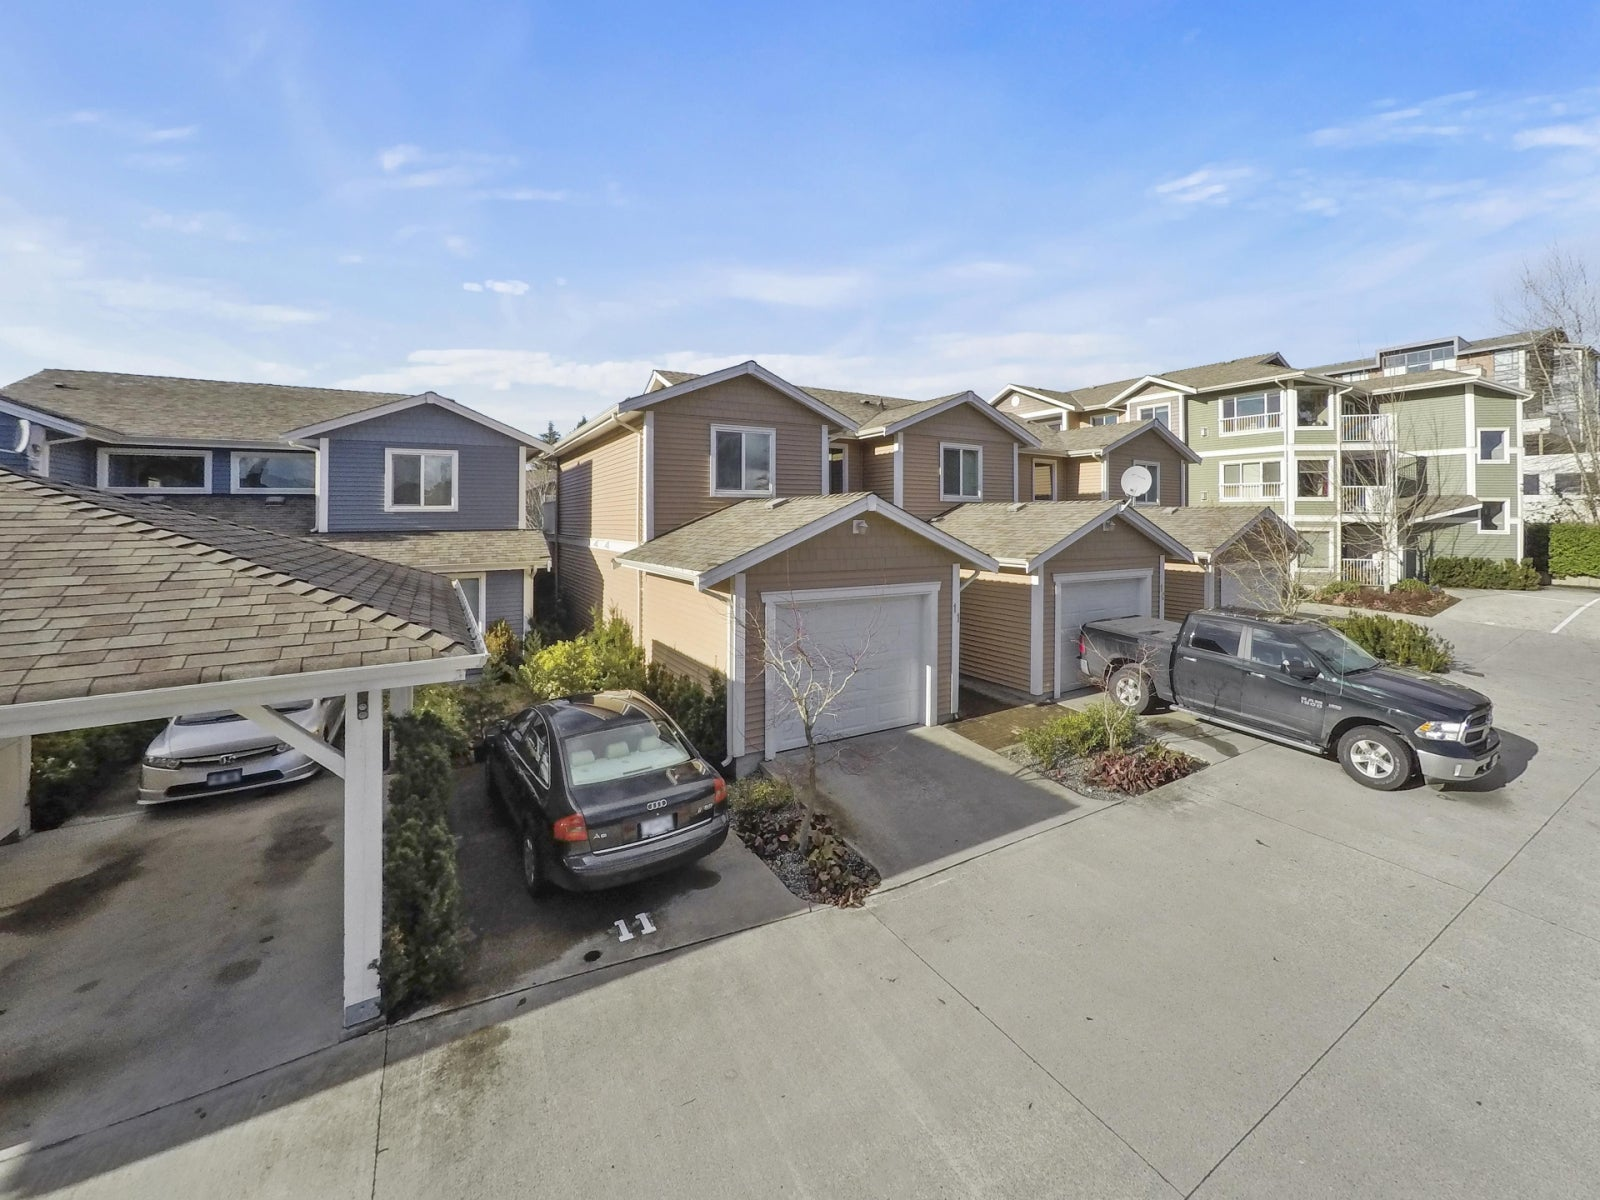 11 624 SHAW ROAD - Gibsons & Area Townhouse for sale, 3 Bedrooms (R2234910) #19